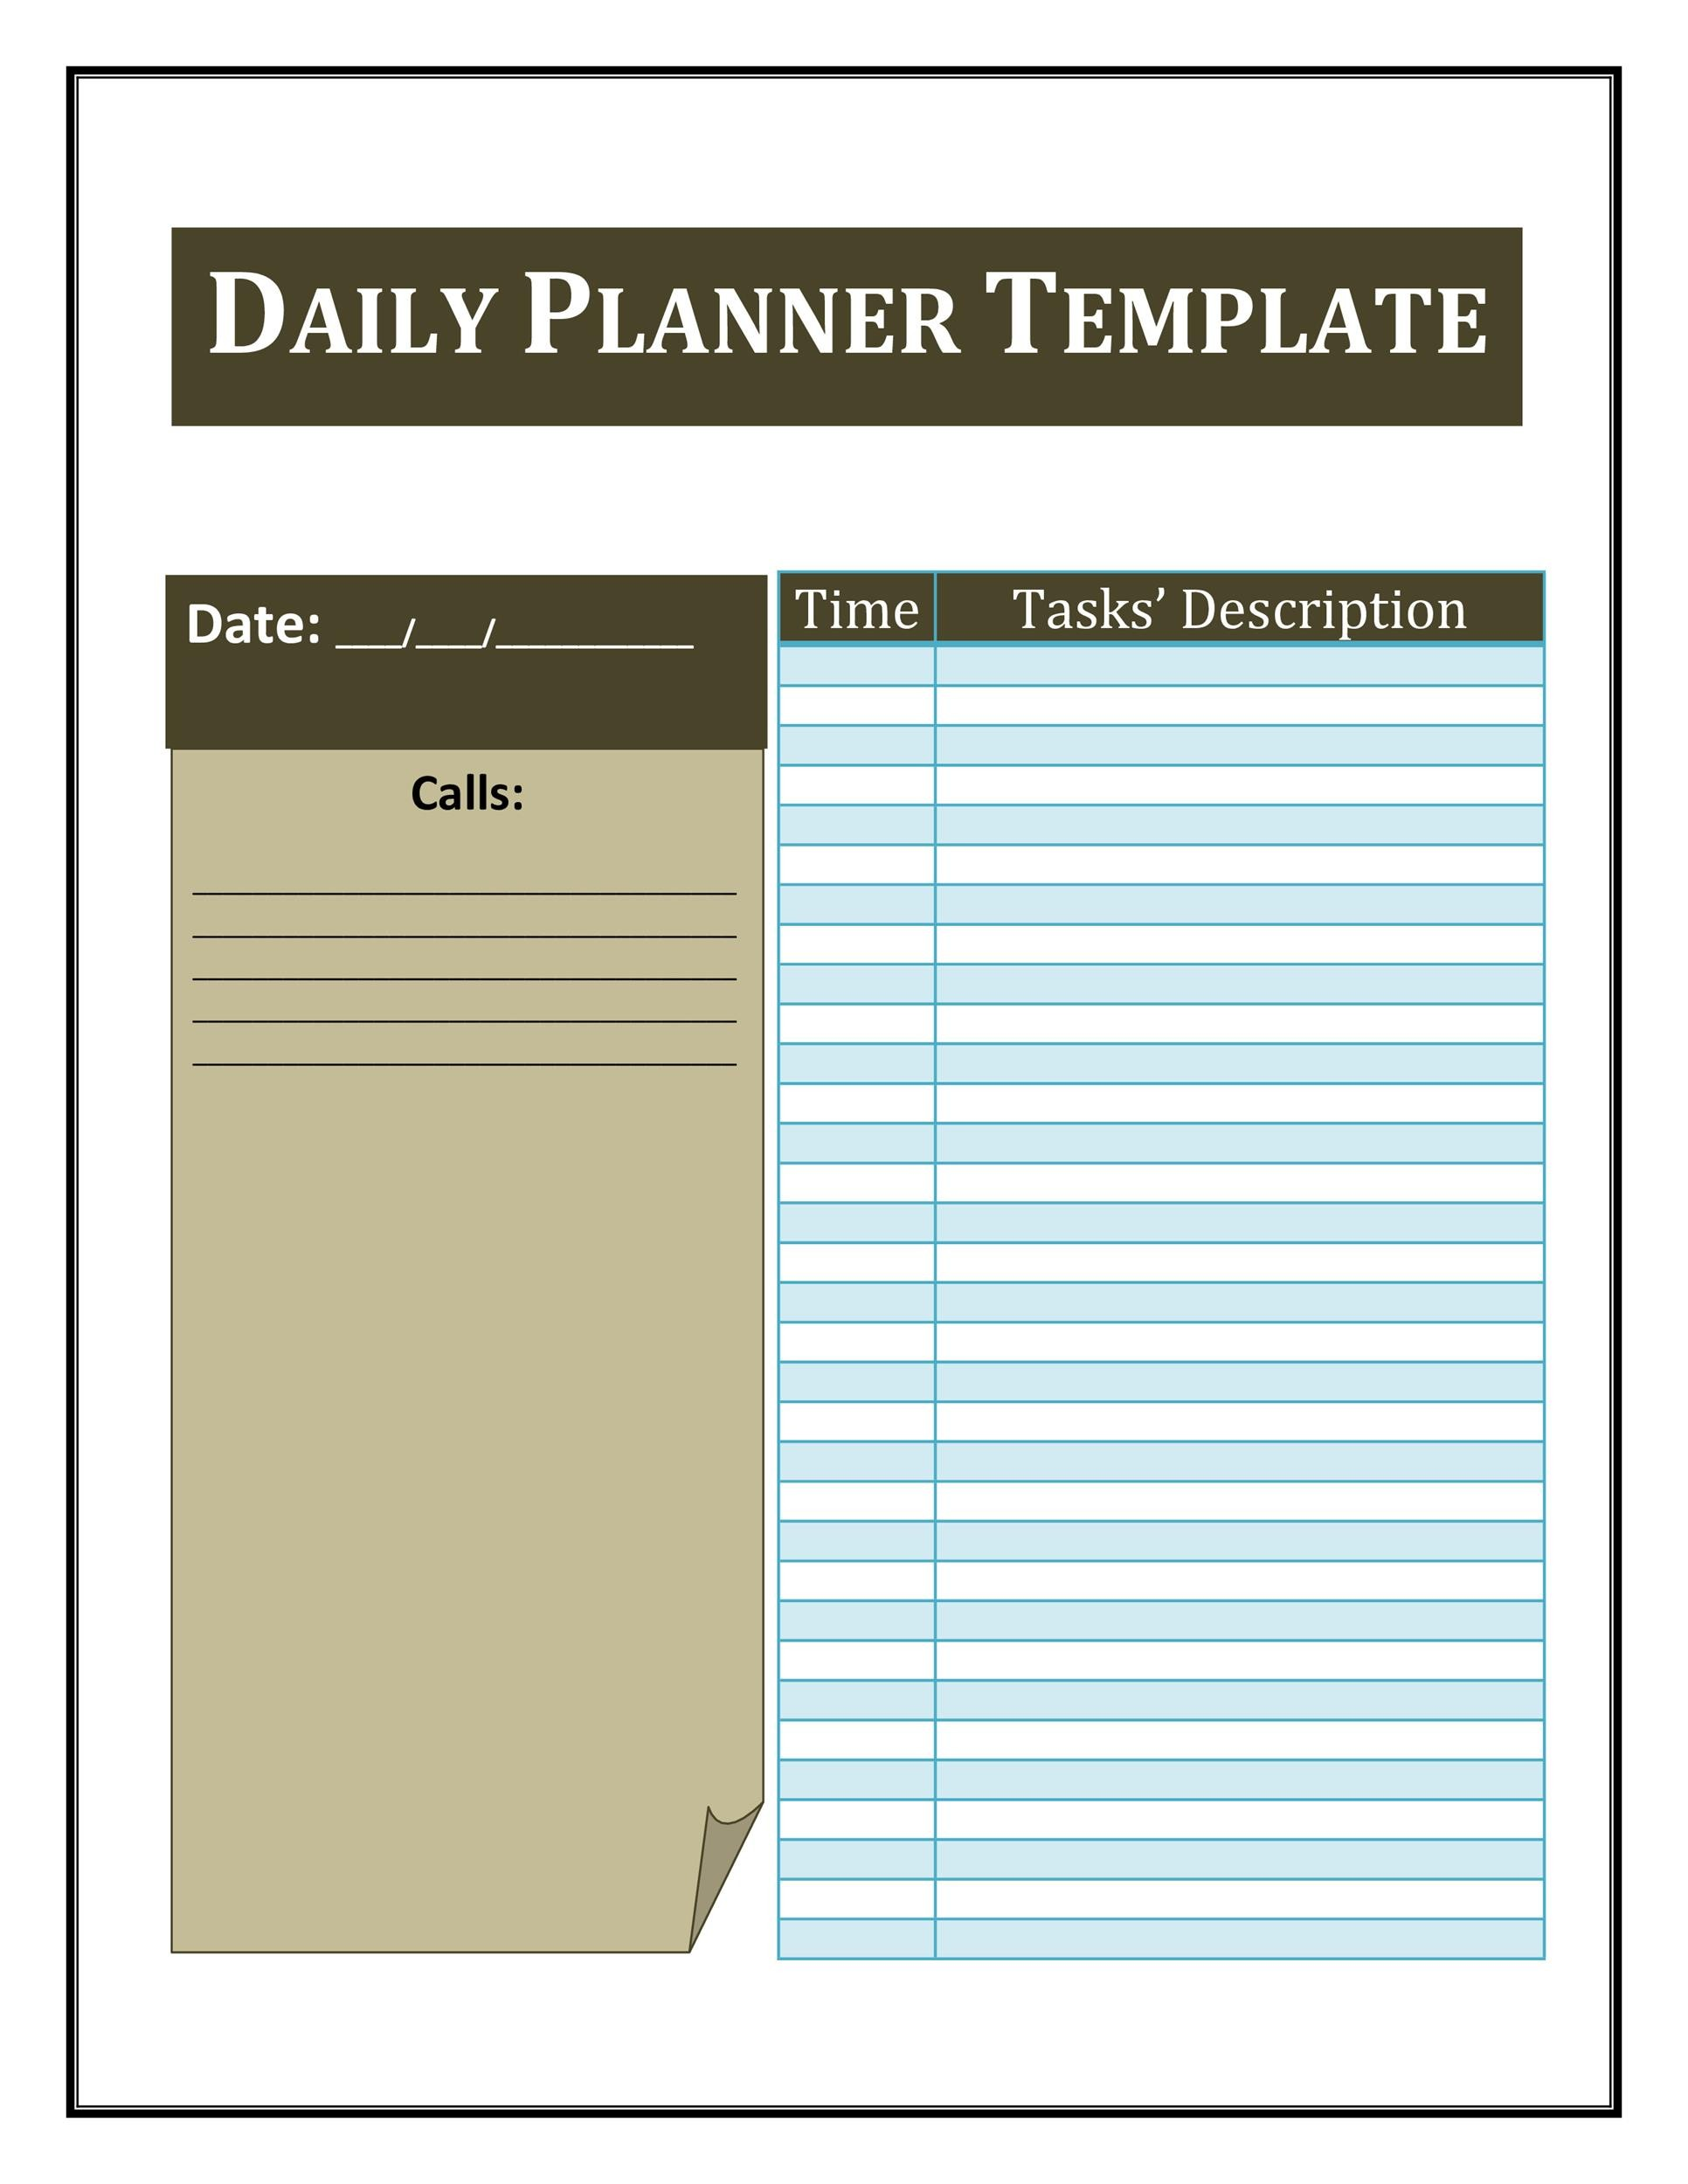 Printable Daily Planner Template 22  Day Planner Template Word